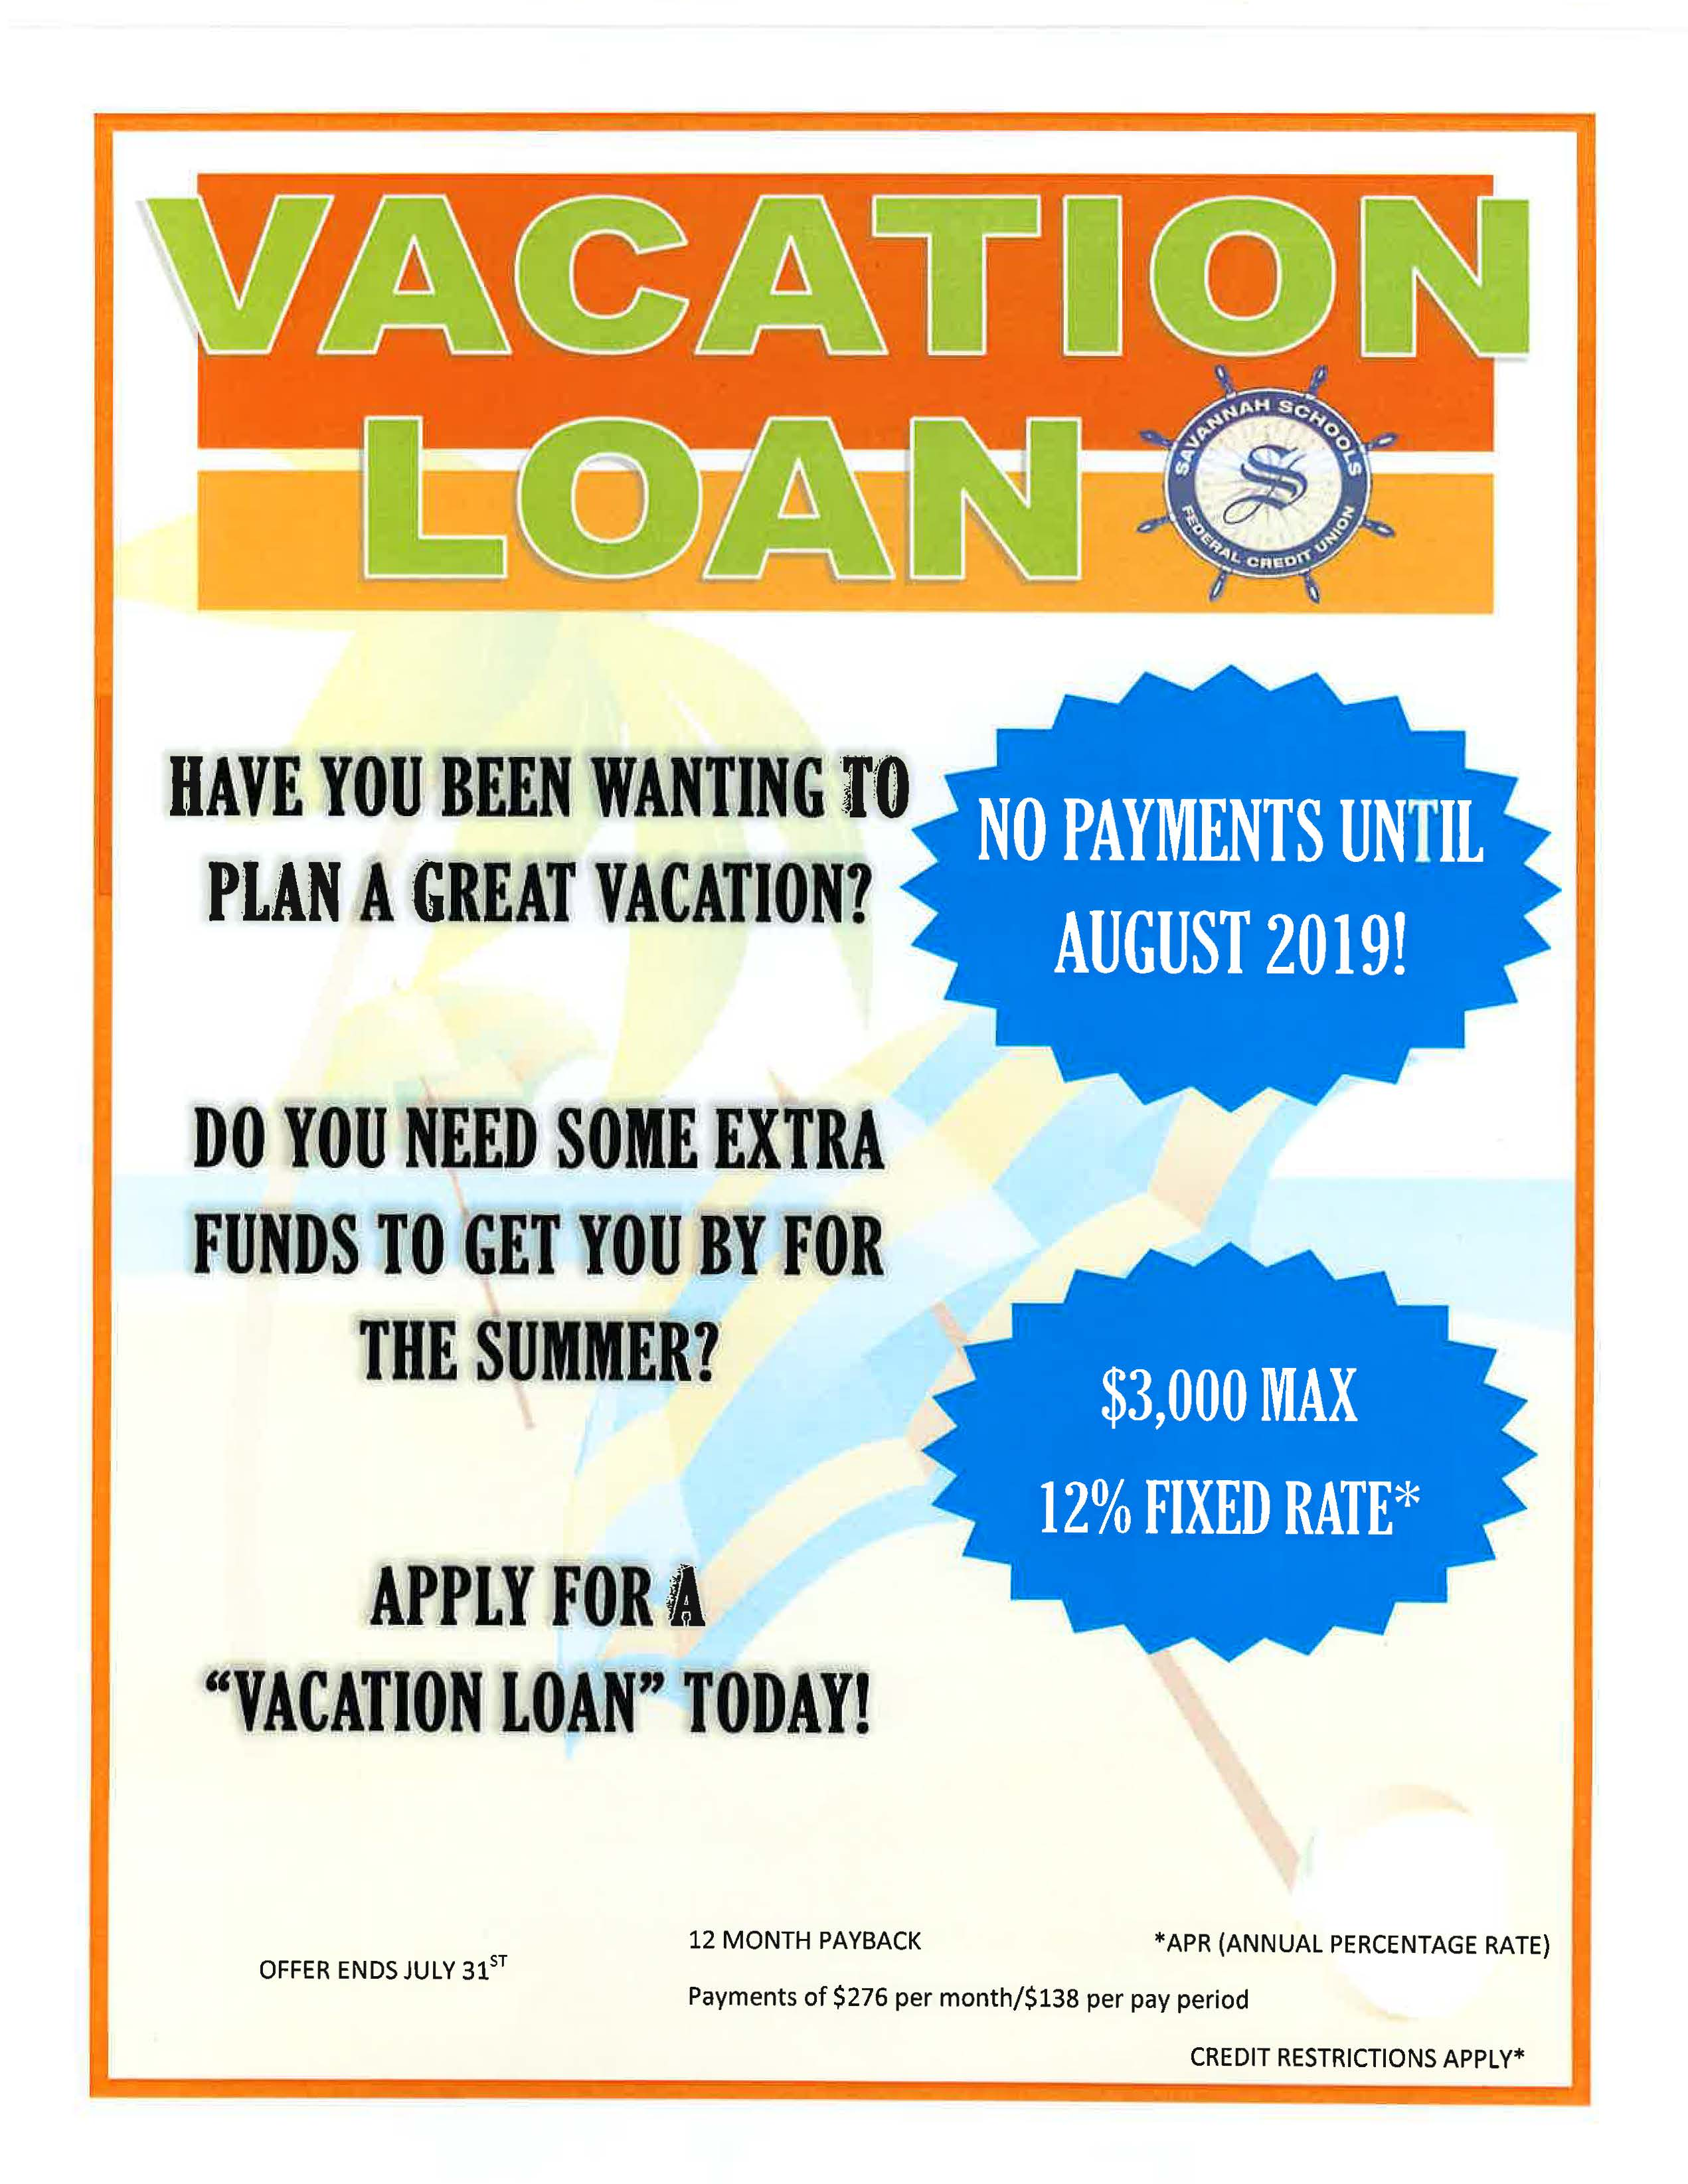 Apply for a vacation loan today! Contact the credit union.